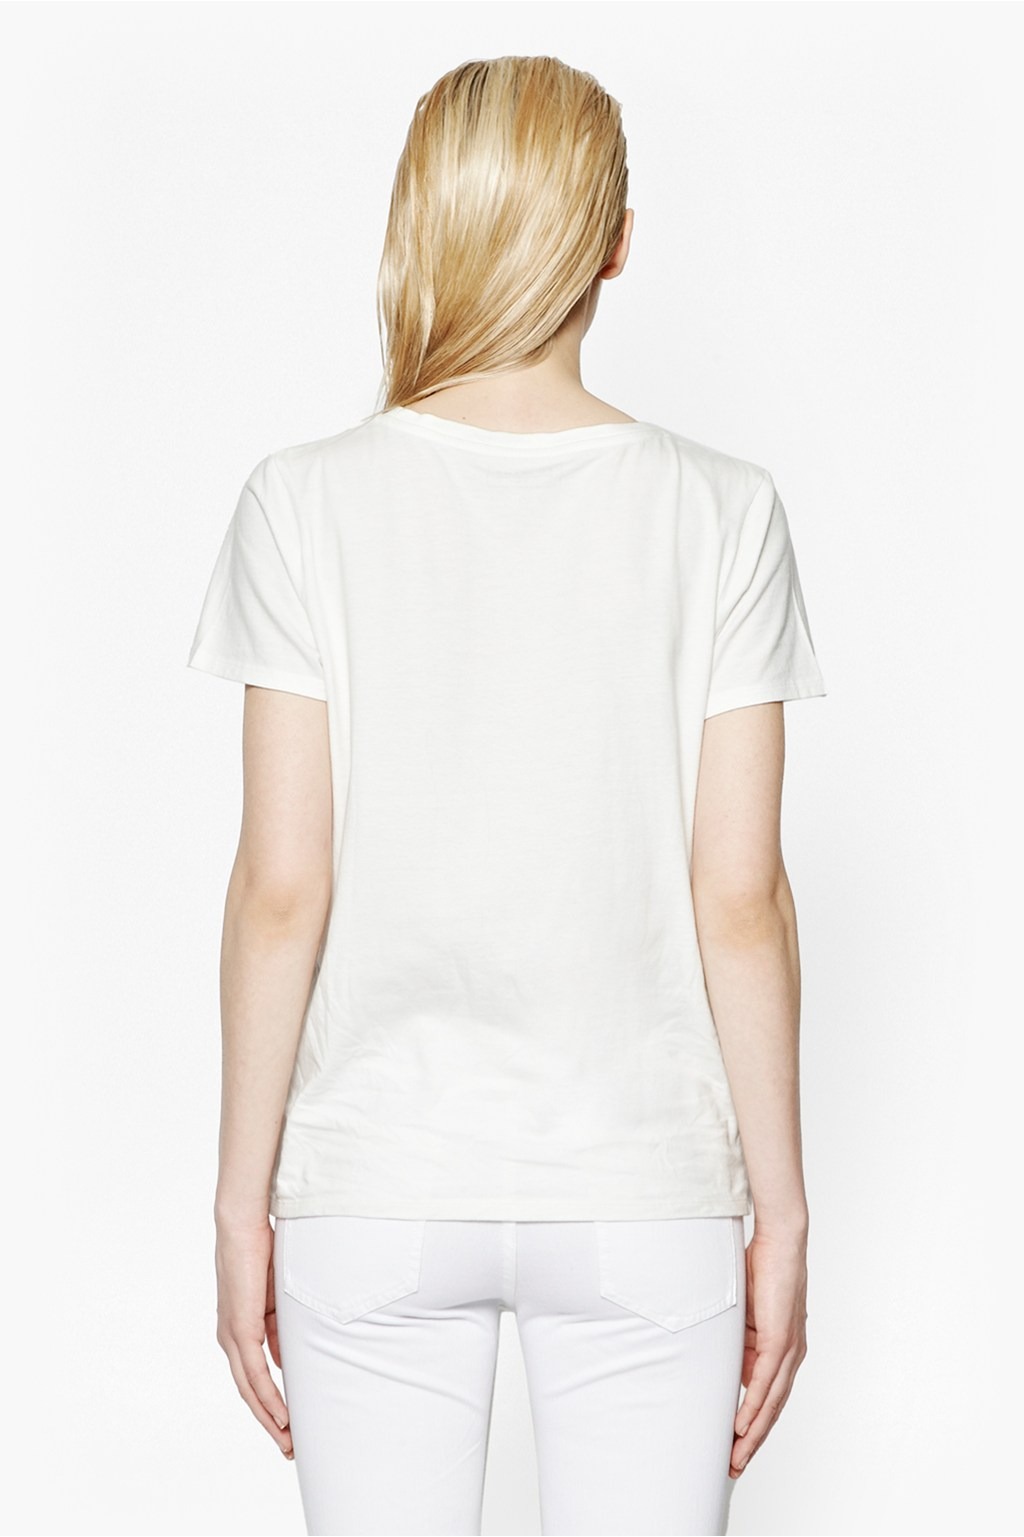 French connection fcuk fame slogan t shirt in white lyst for French connection t shirt dress